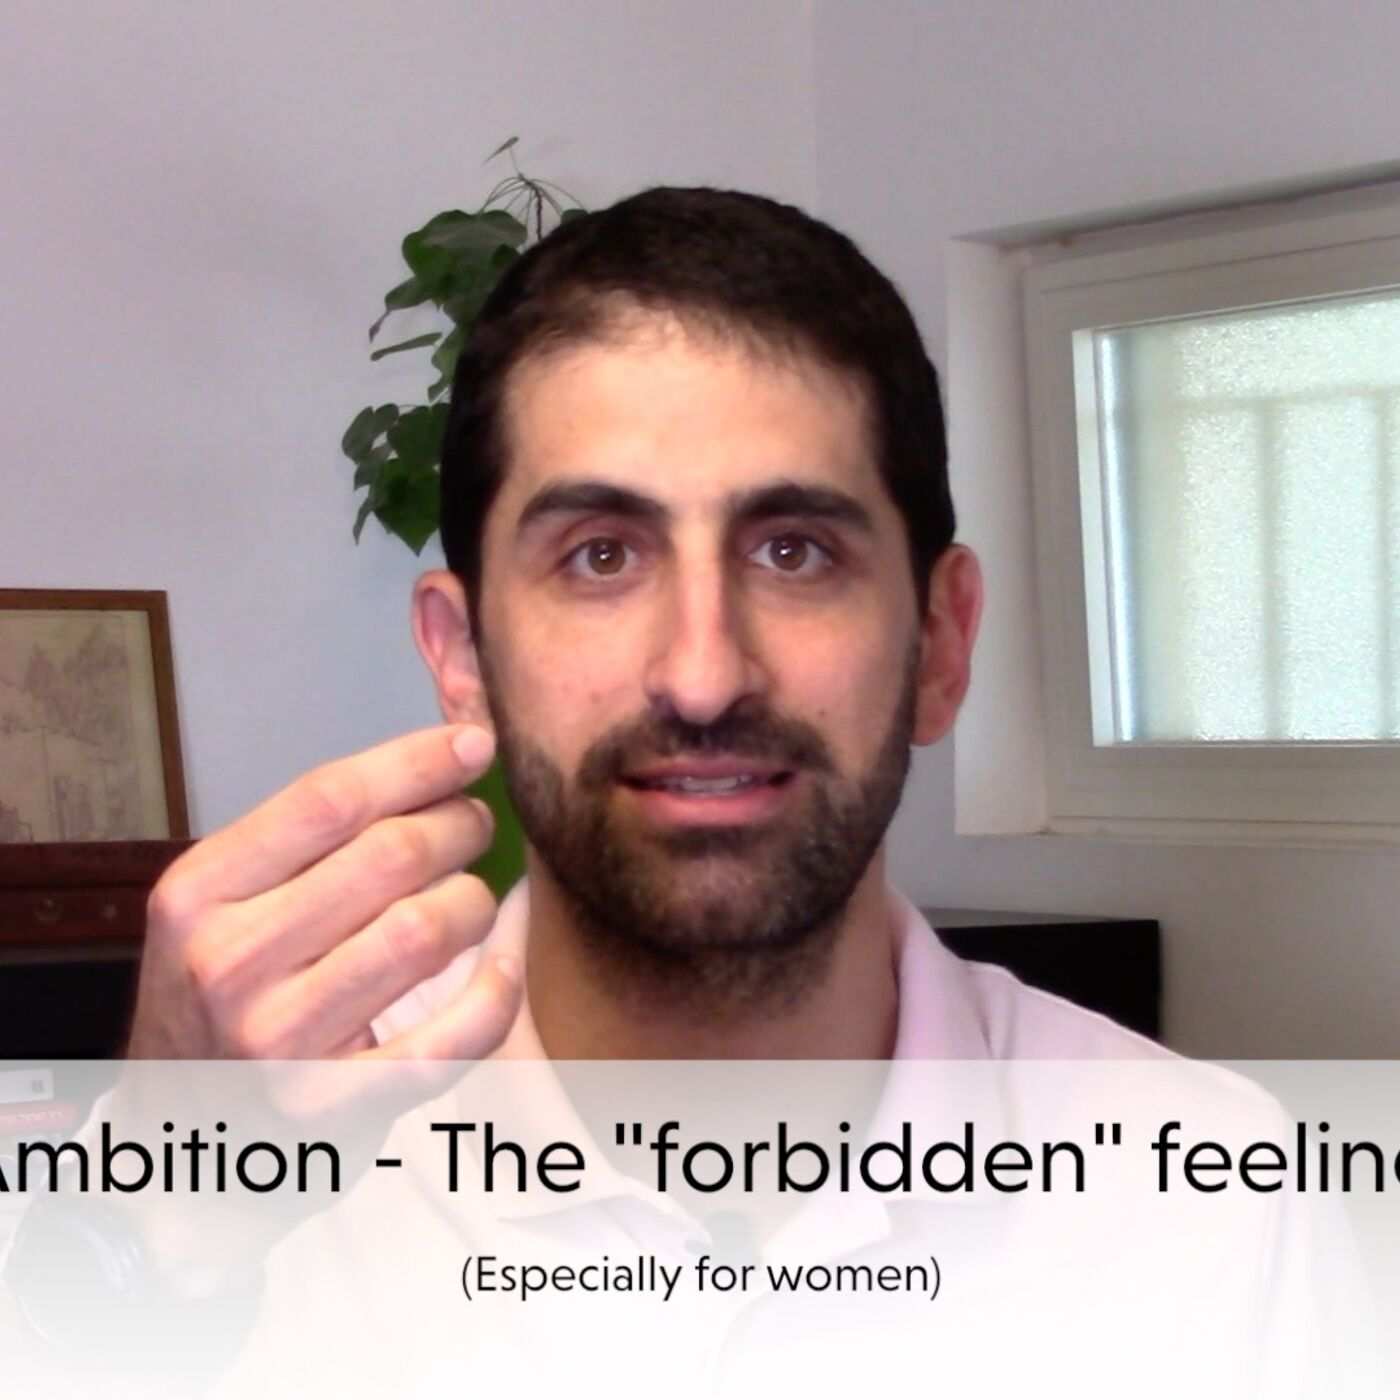 Ambition - The Forbidden Feeling (especially for women)